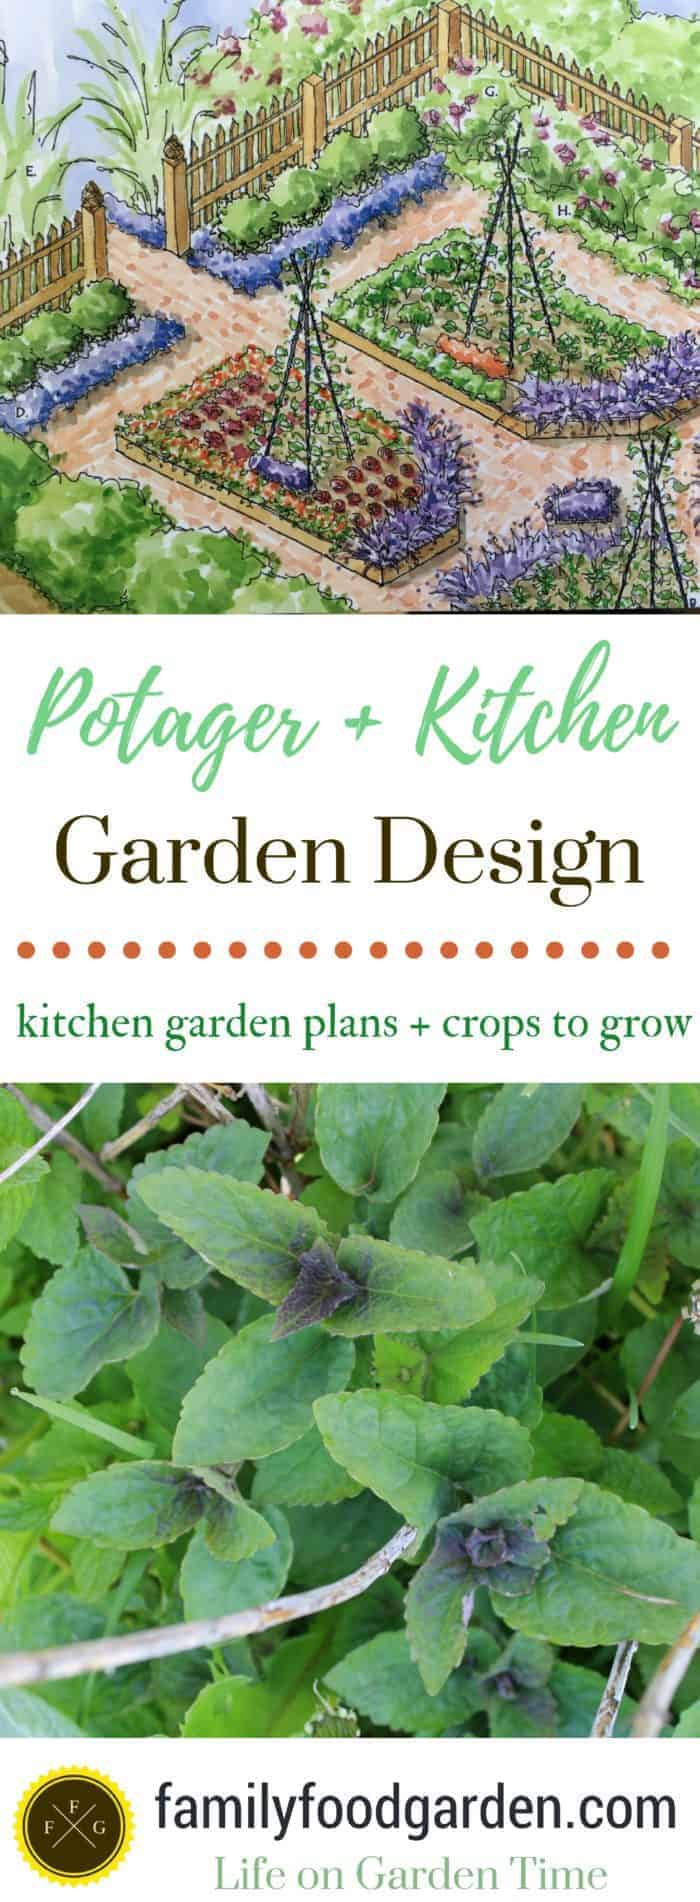 What to plant in a potager garden + kitchen garden design plans